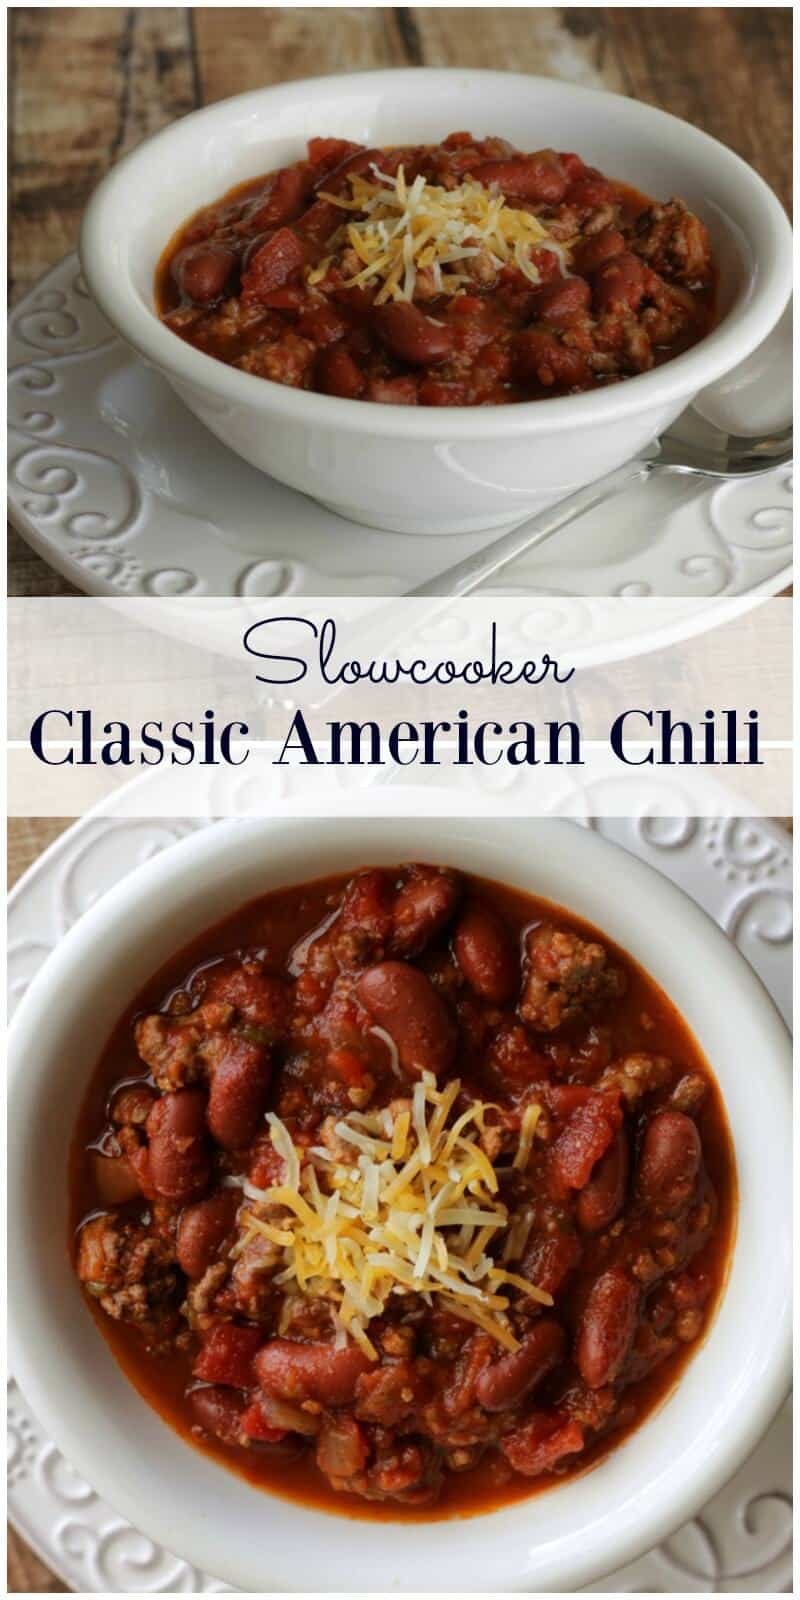 Slowcooker Classic American Chili is so simple and delicious! I've been making this for over a decade--a family favorite! | Recipe at MealPlanningMagic.com